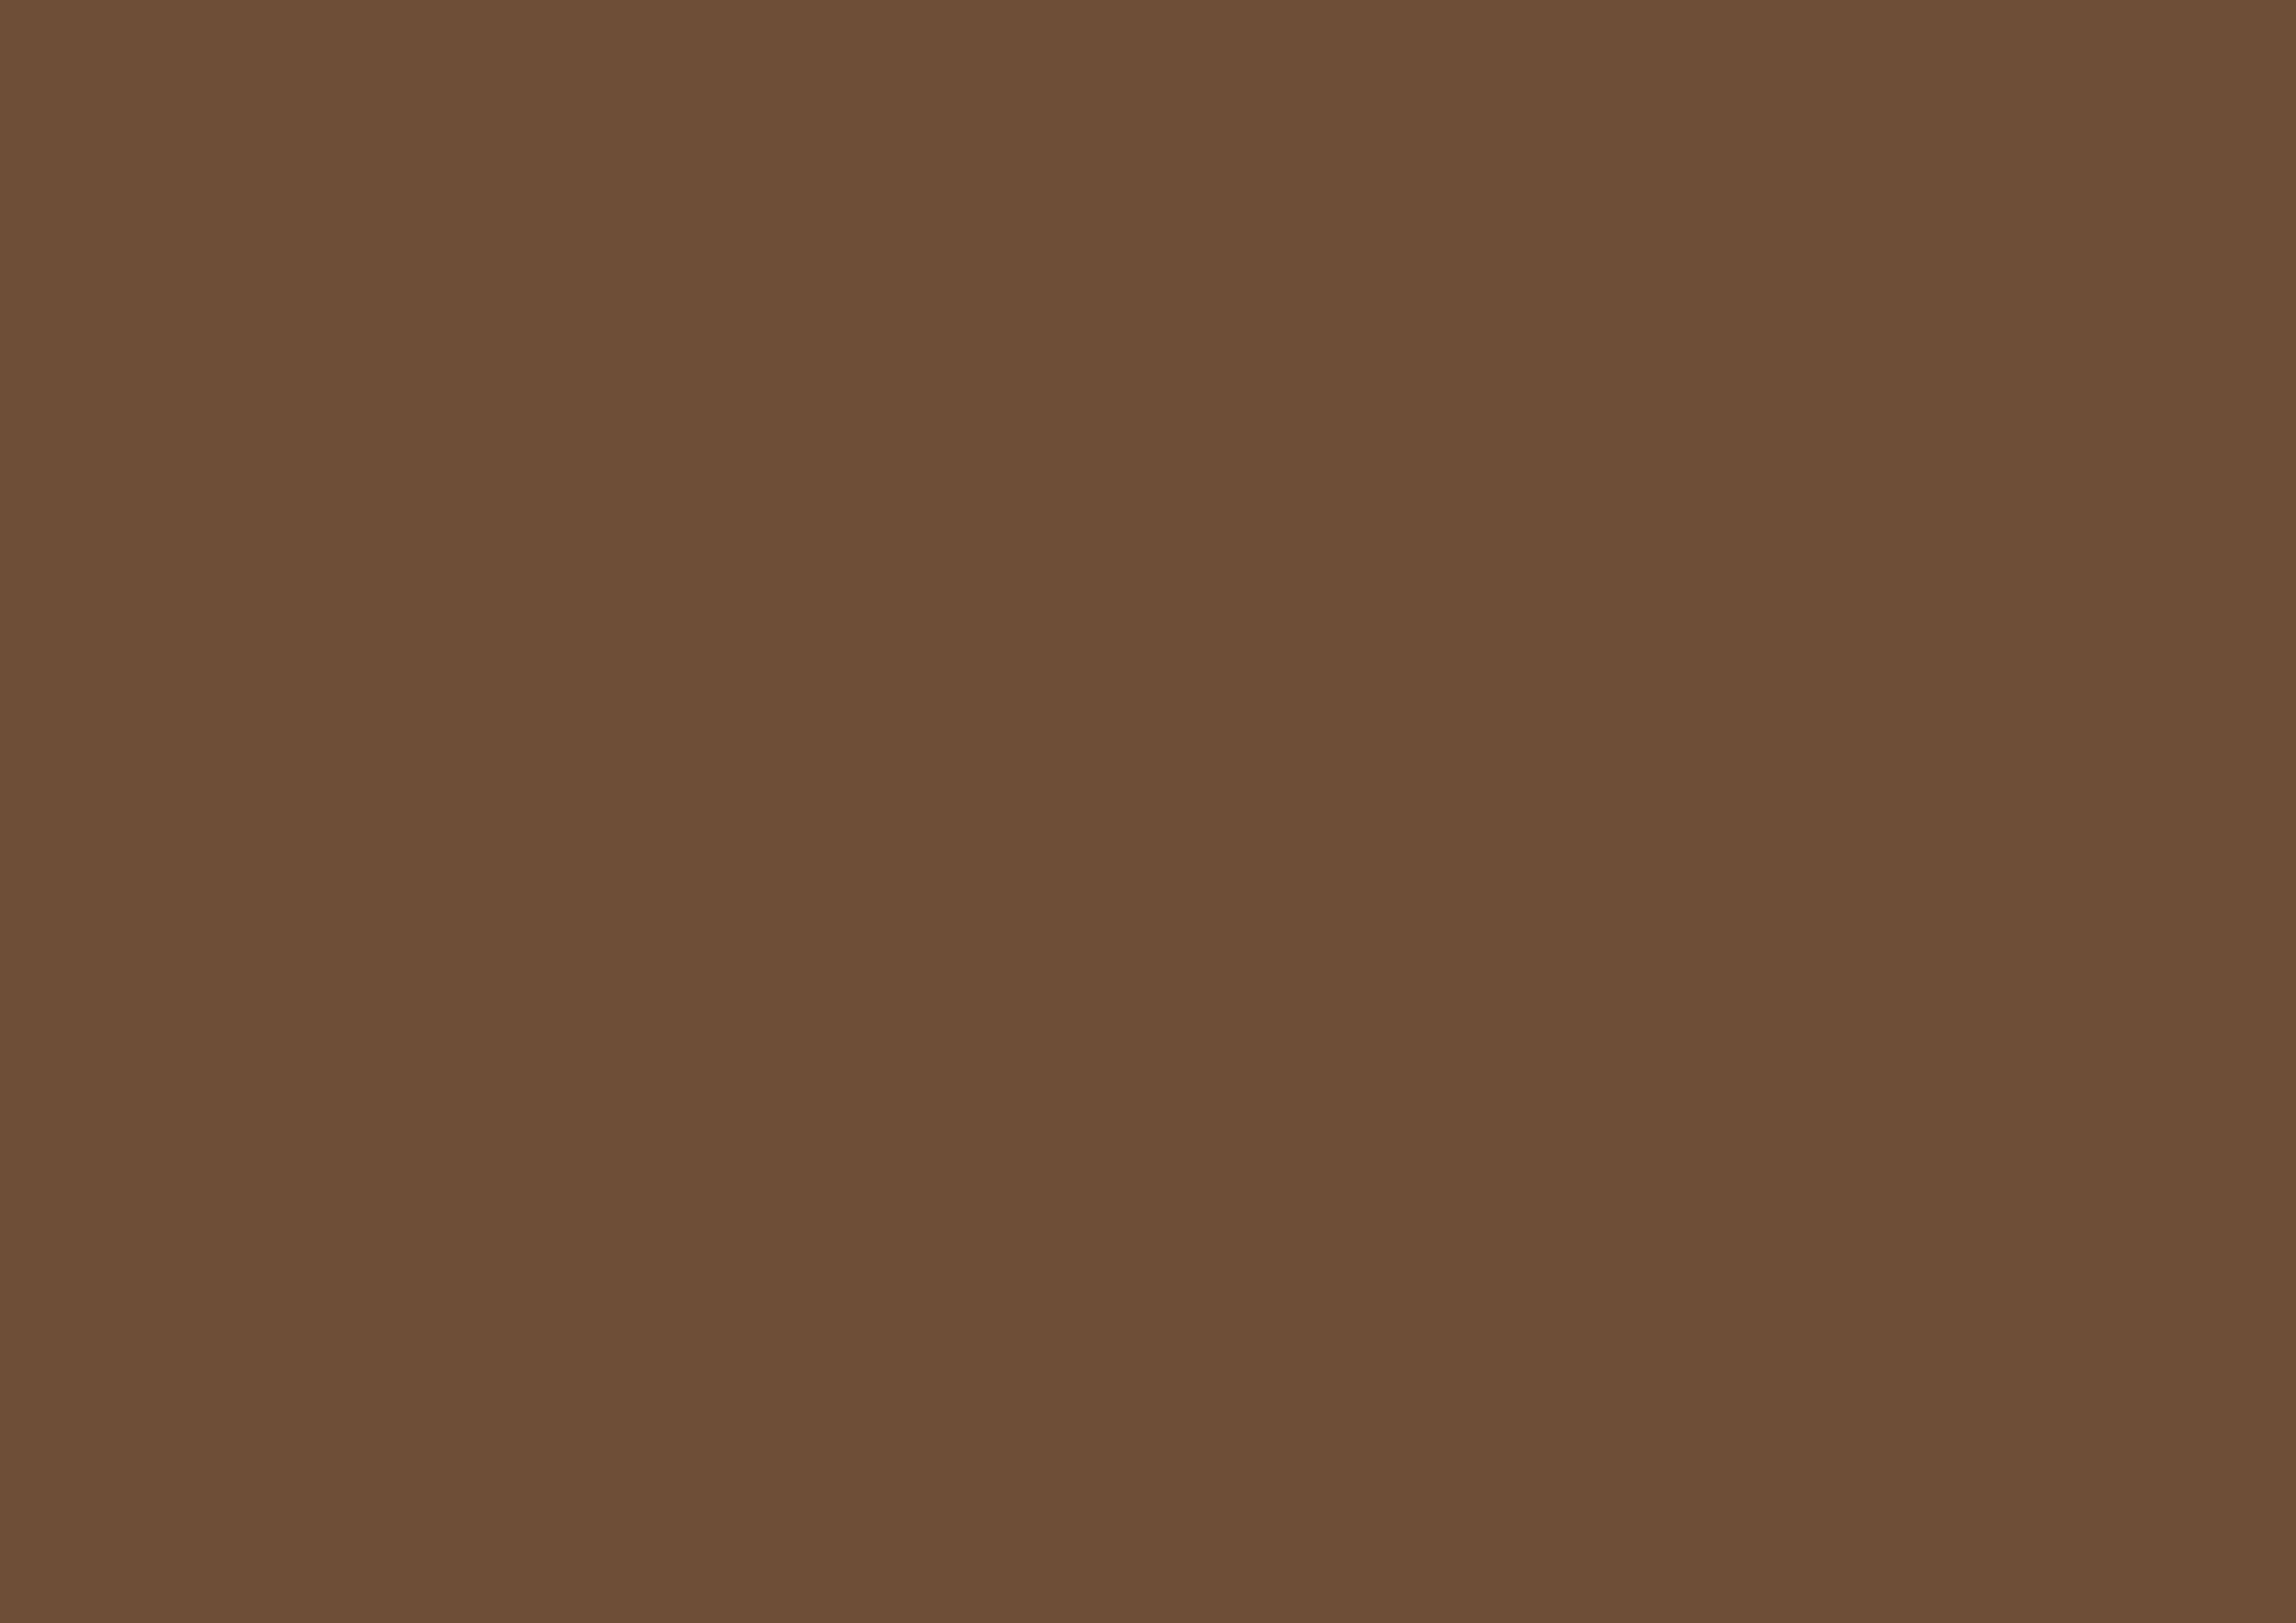 3508x2480 Tuscan Brown Solid Color Background